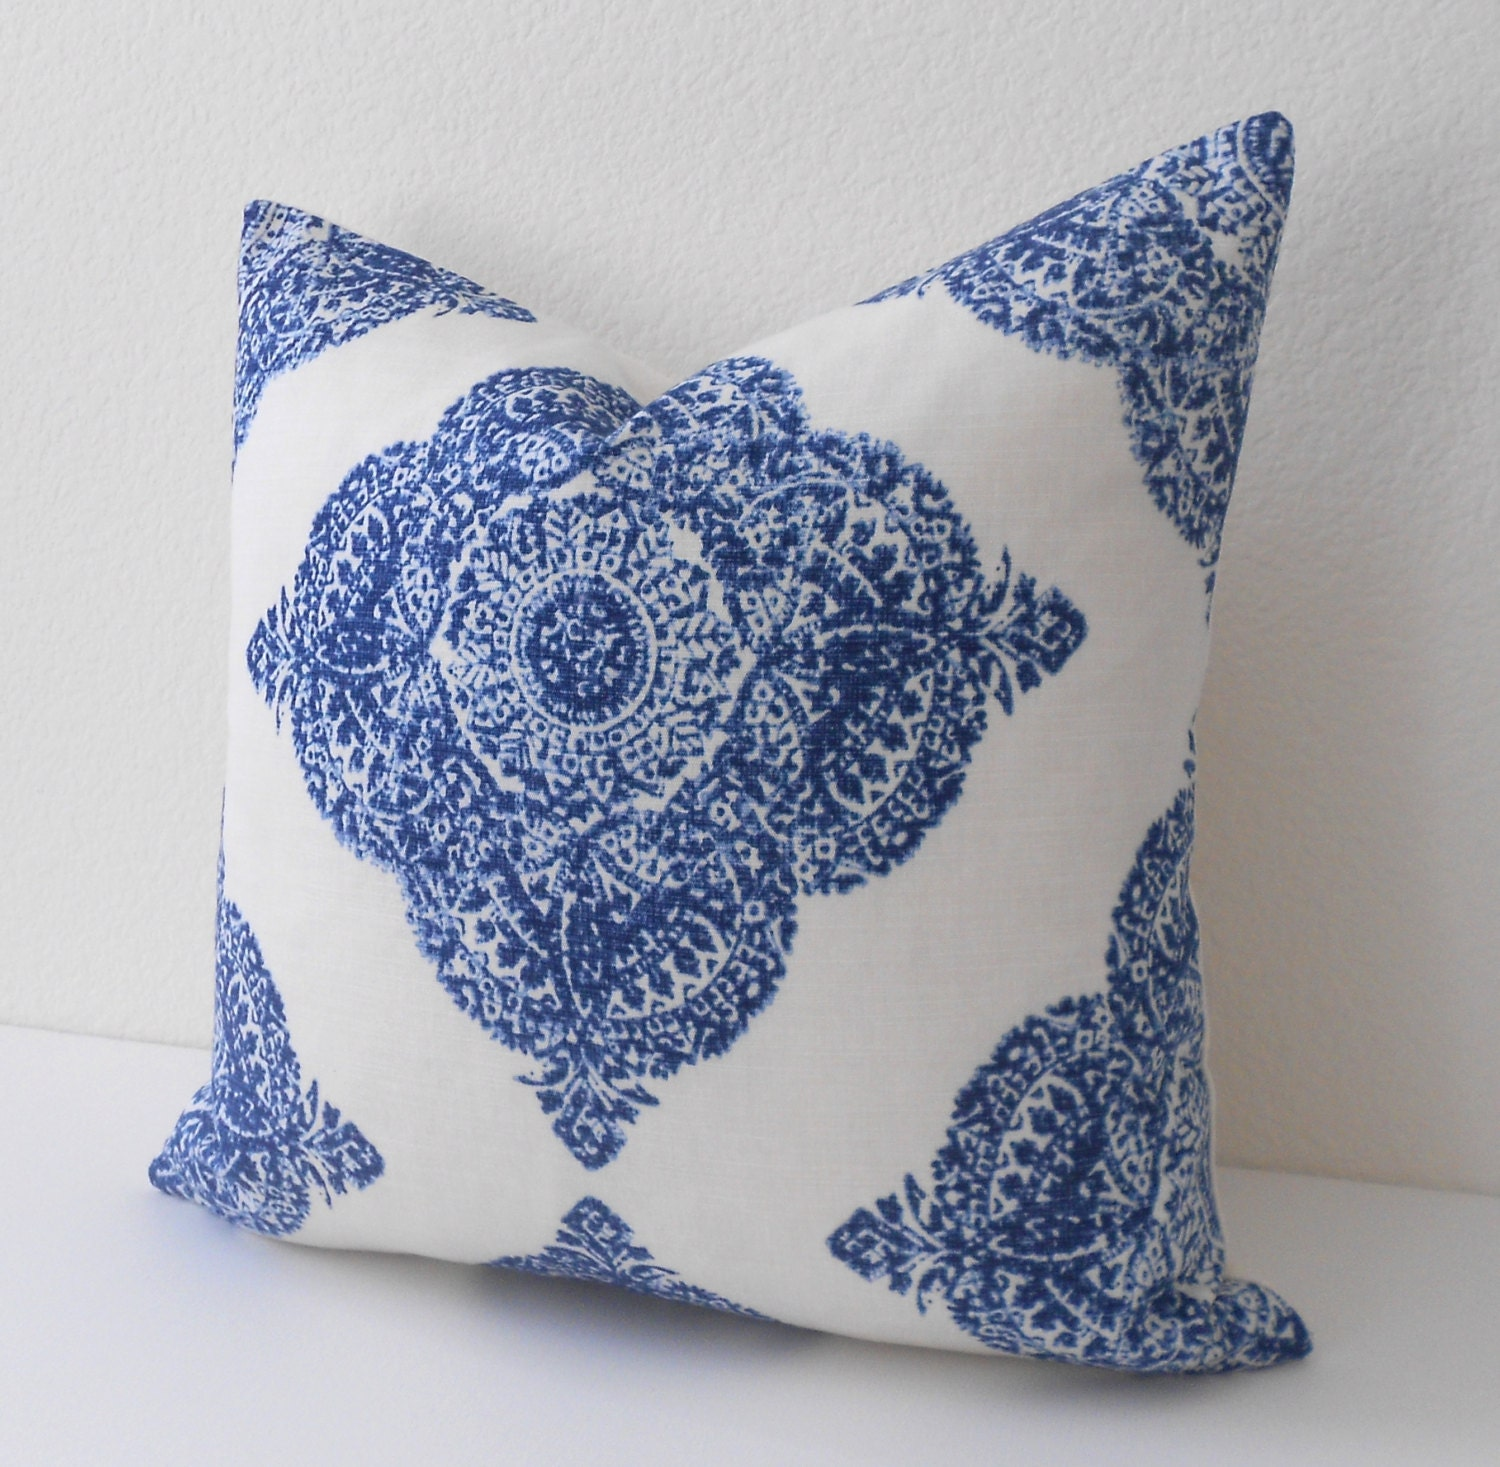 Decorative Pillows Navy : Navy medallion ikat decorative pillow cover